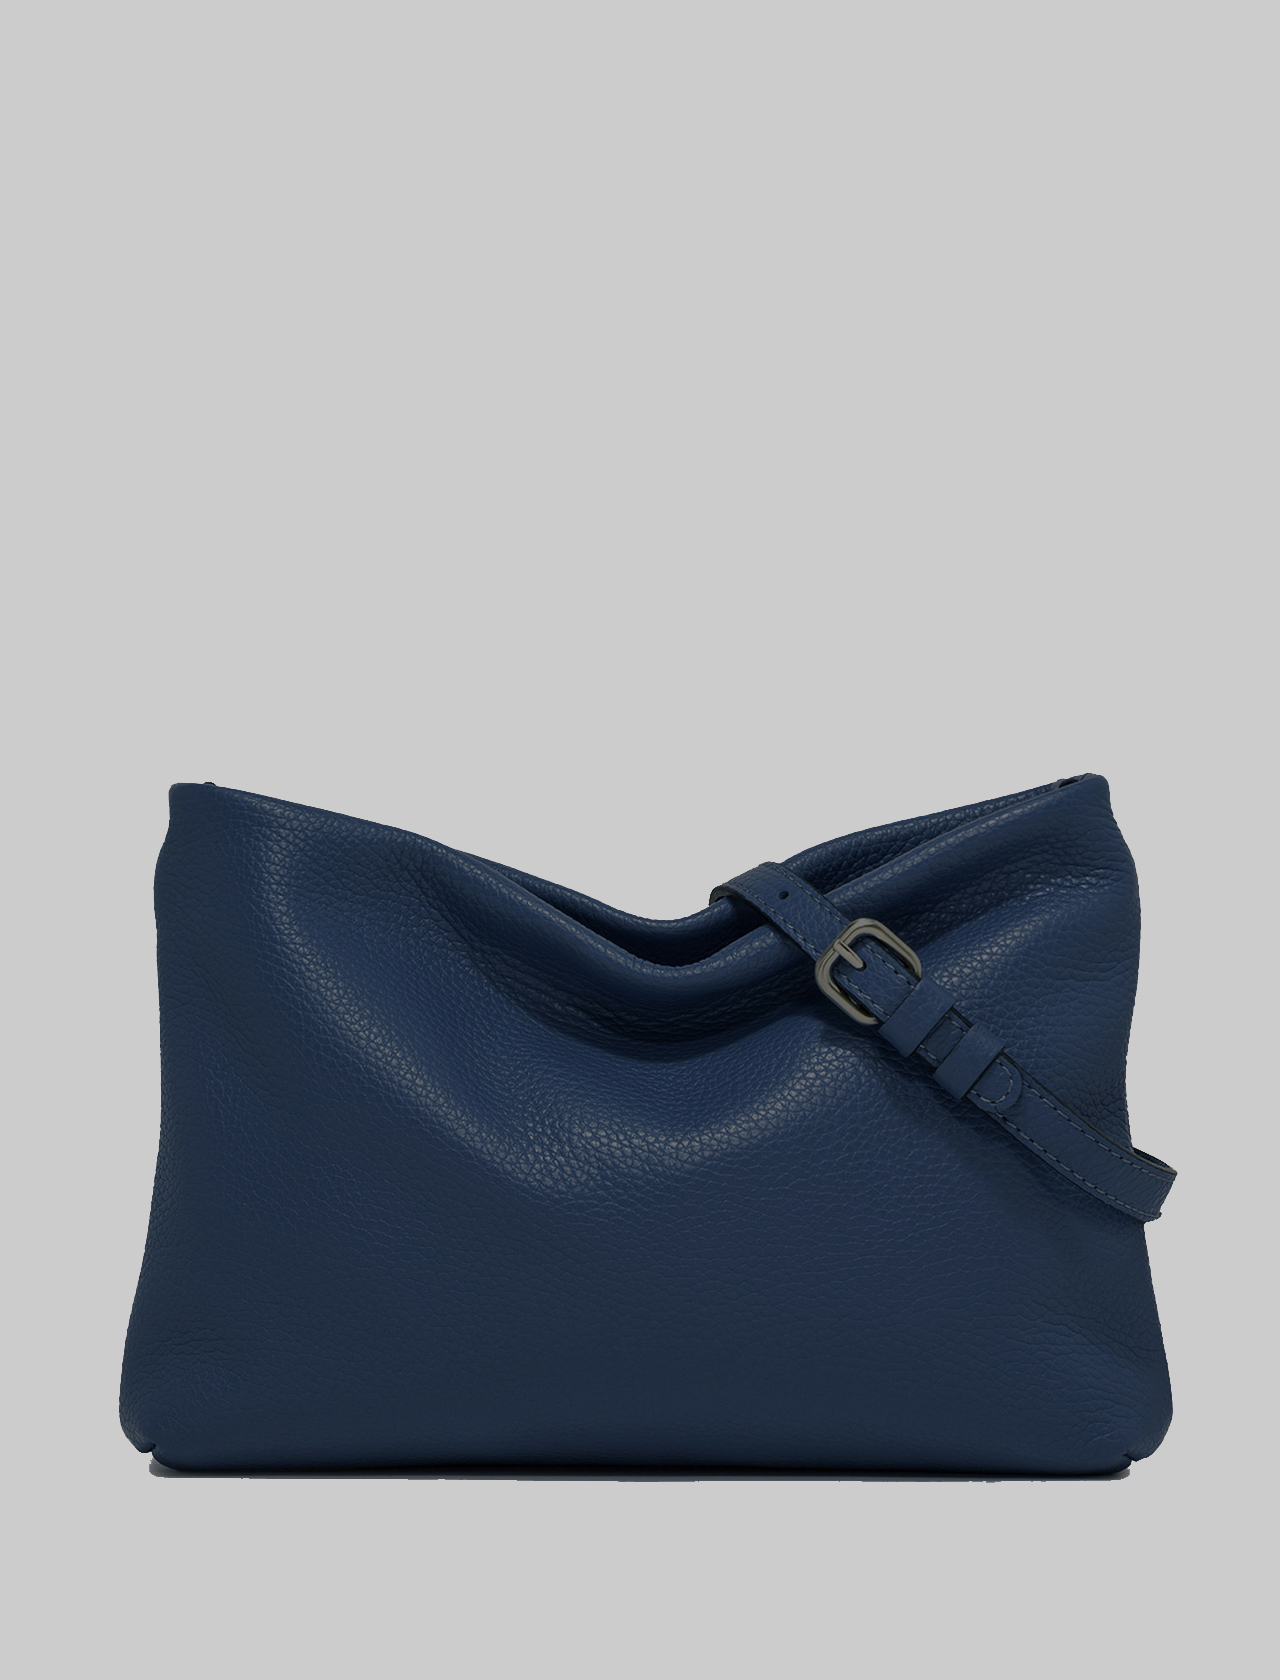 Brenda Woman Shoulder Bag In Blue Leather With Matching Chain And Adjustable And Removable Shoulder Strap Gianni Chiarini | Bags and backpacks | BS82650208